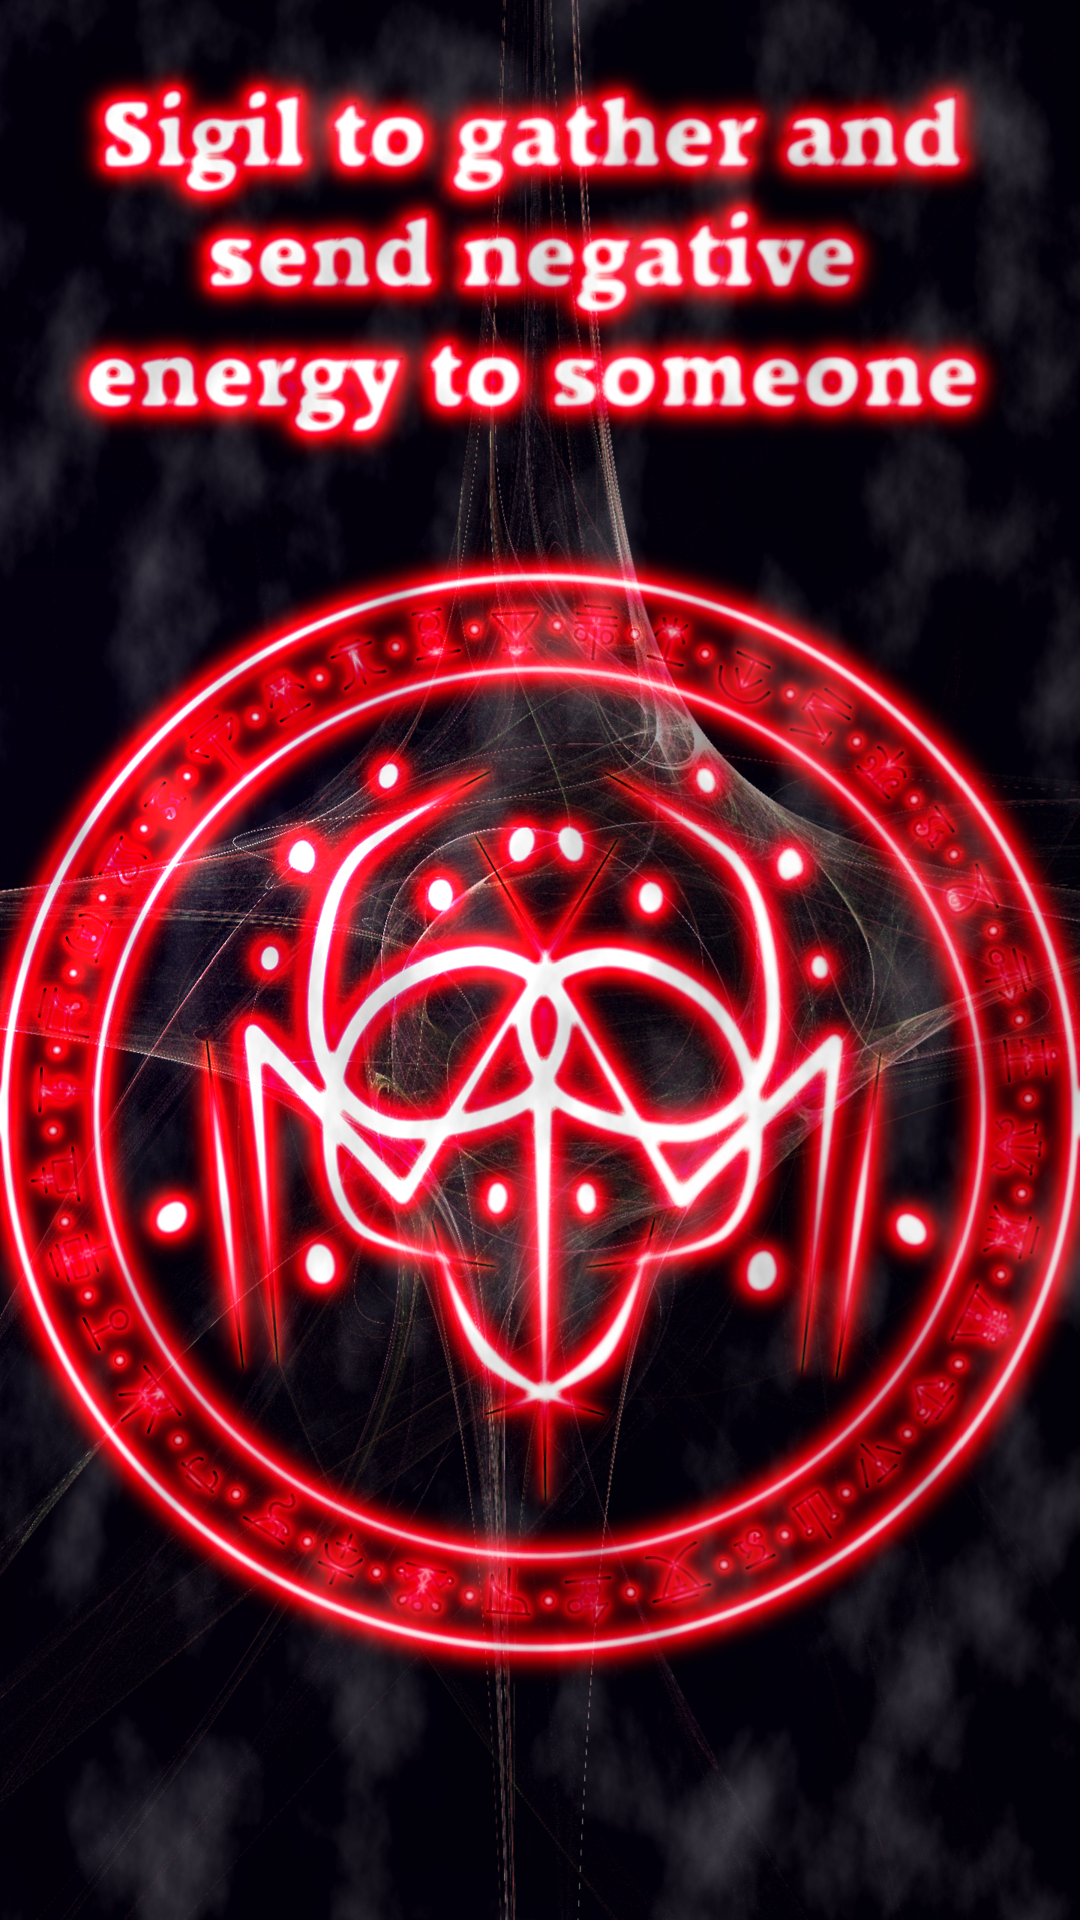 Sigil to gather and send negative energy to someone | BoS